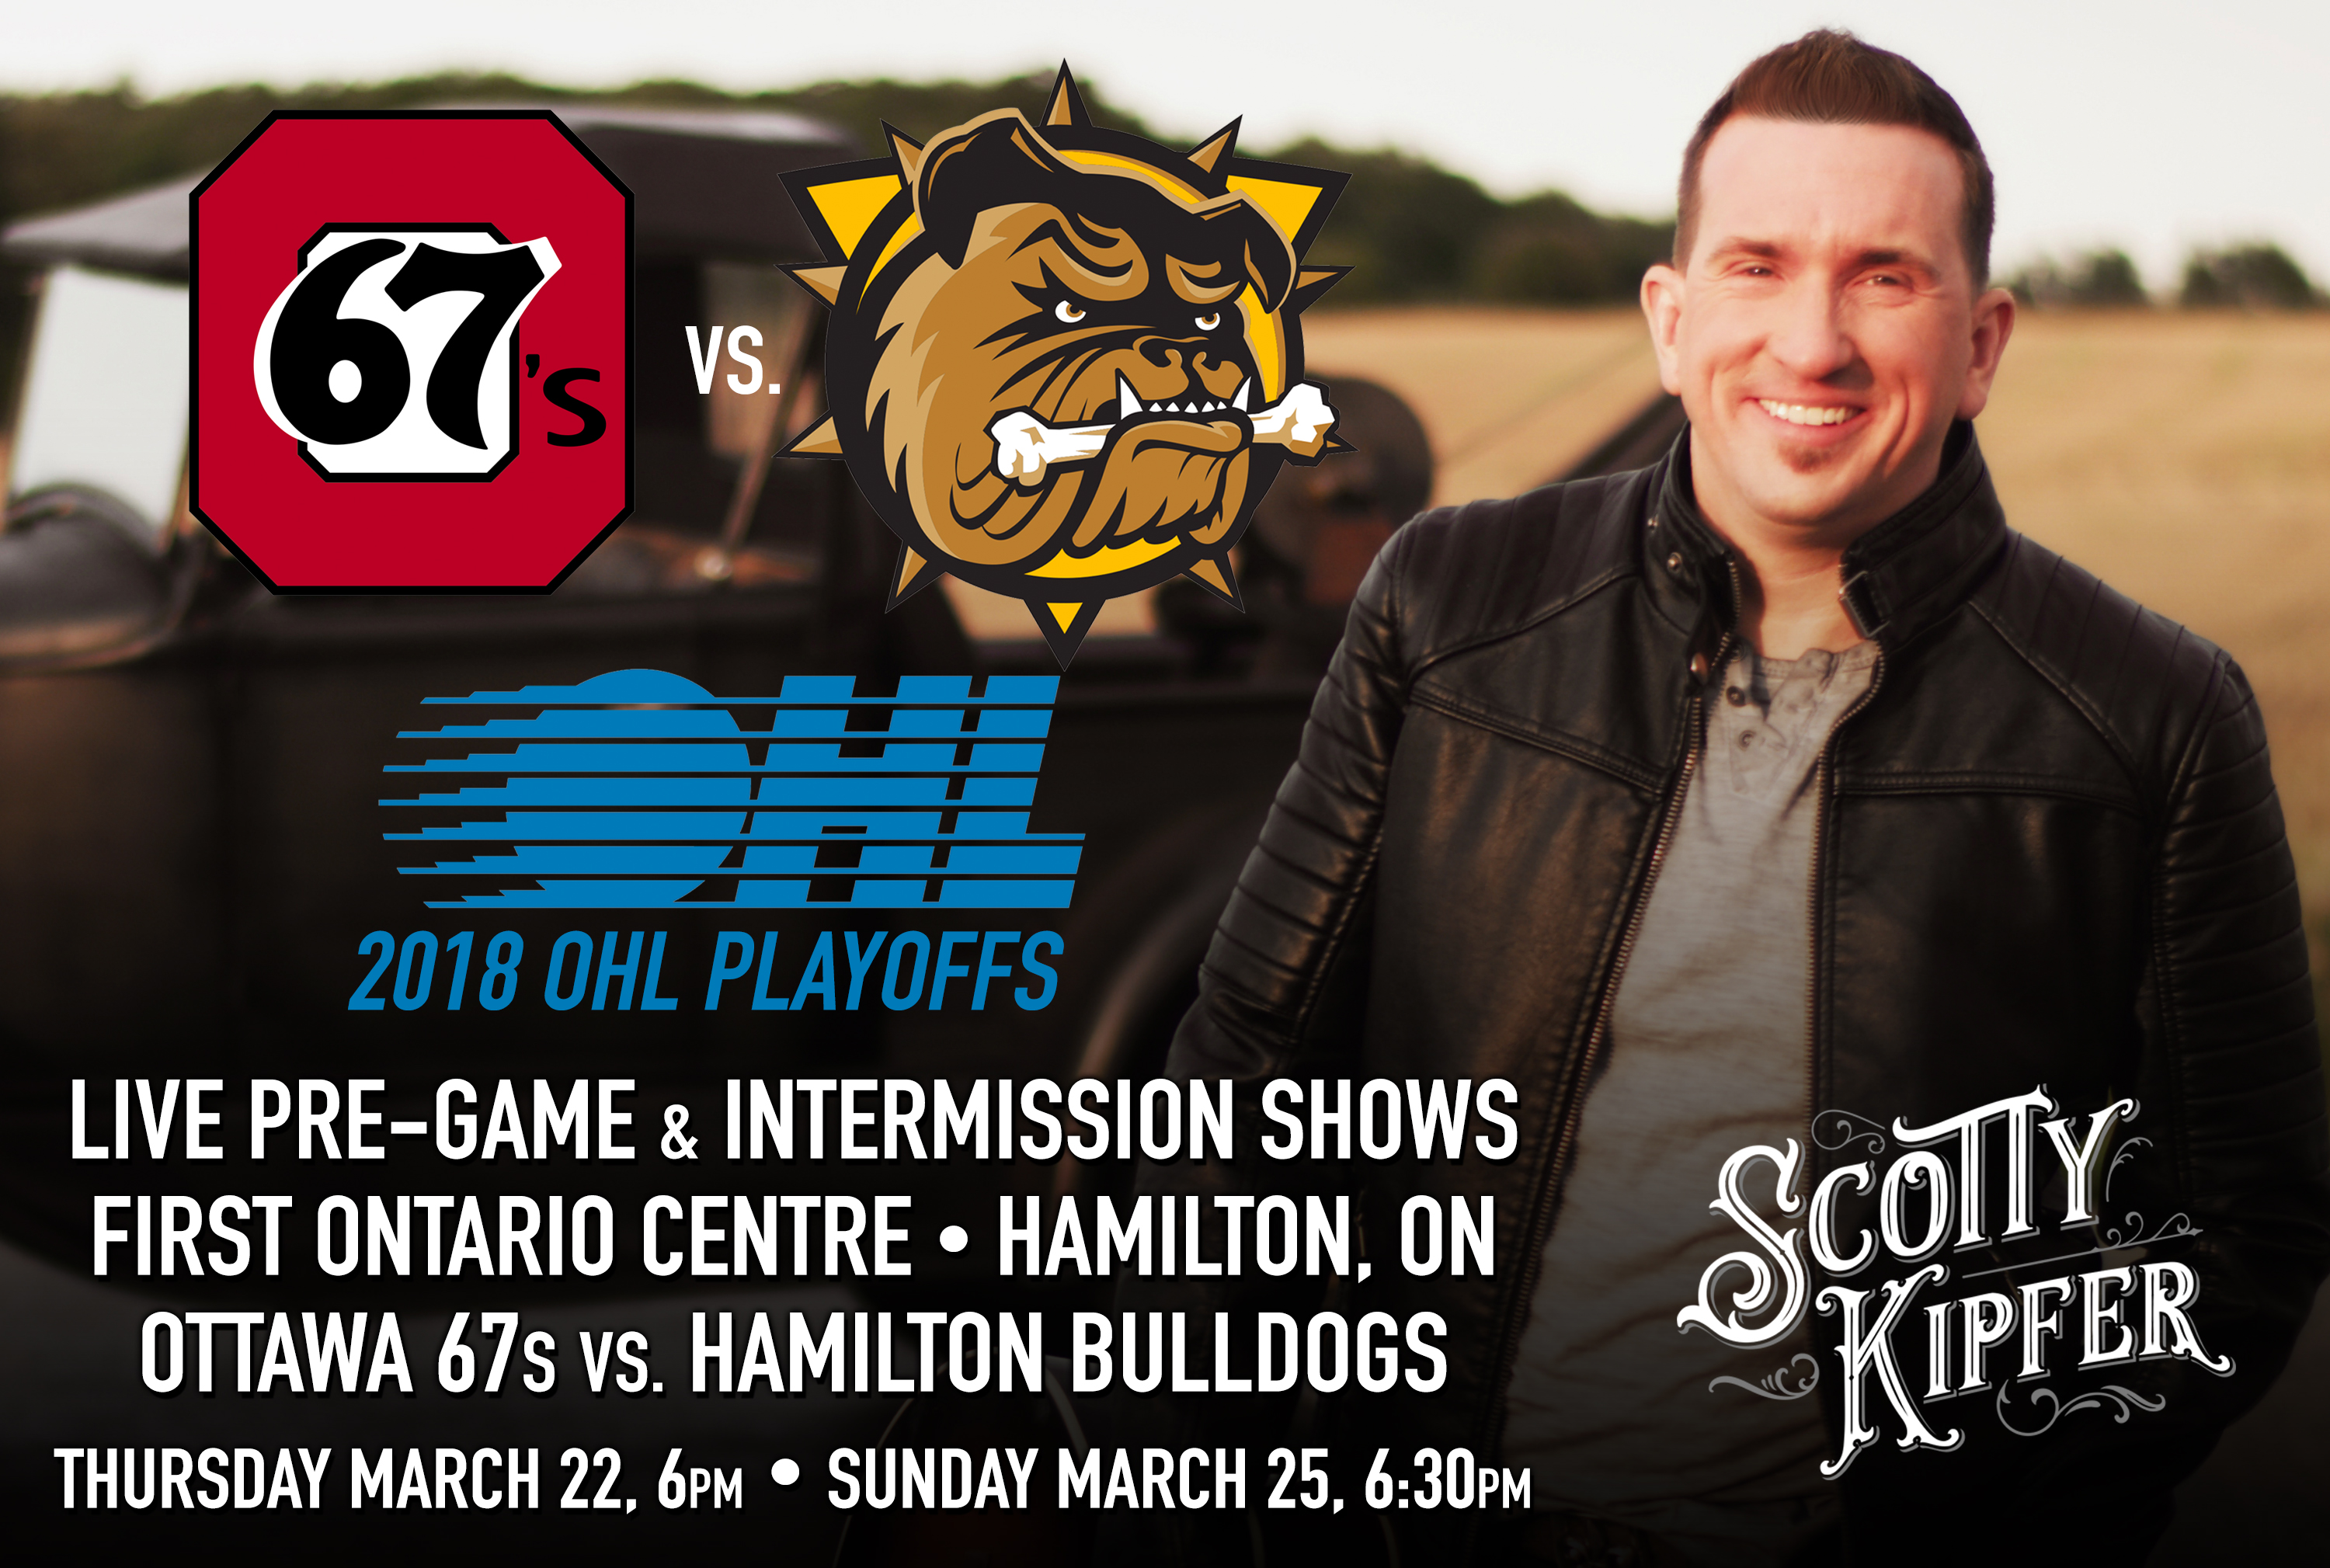 Scotty will perform live pre-game shows for Hamilton Bulldogs playoff games at First Ontario Centre in Hamilton Ontario, March 22, and March 25. The Bulldogs take on the Ottawa 67s in round one of the 2018 OHL Playoffs.